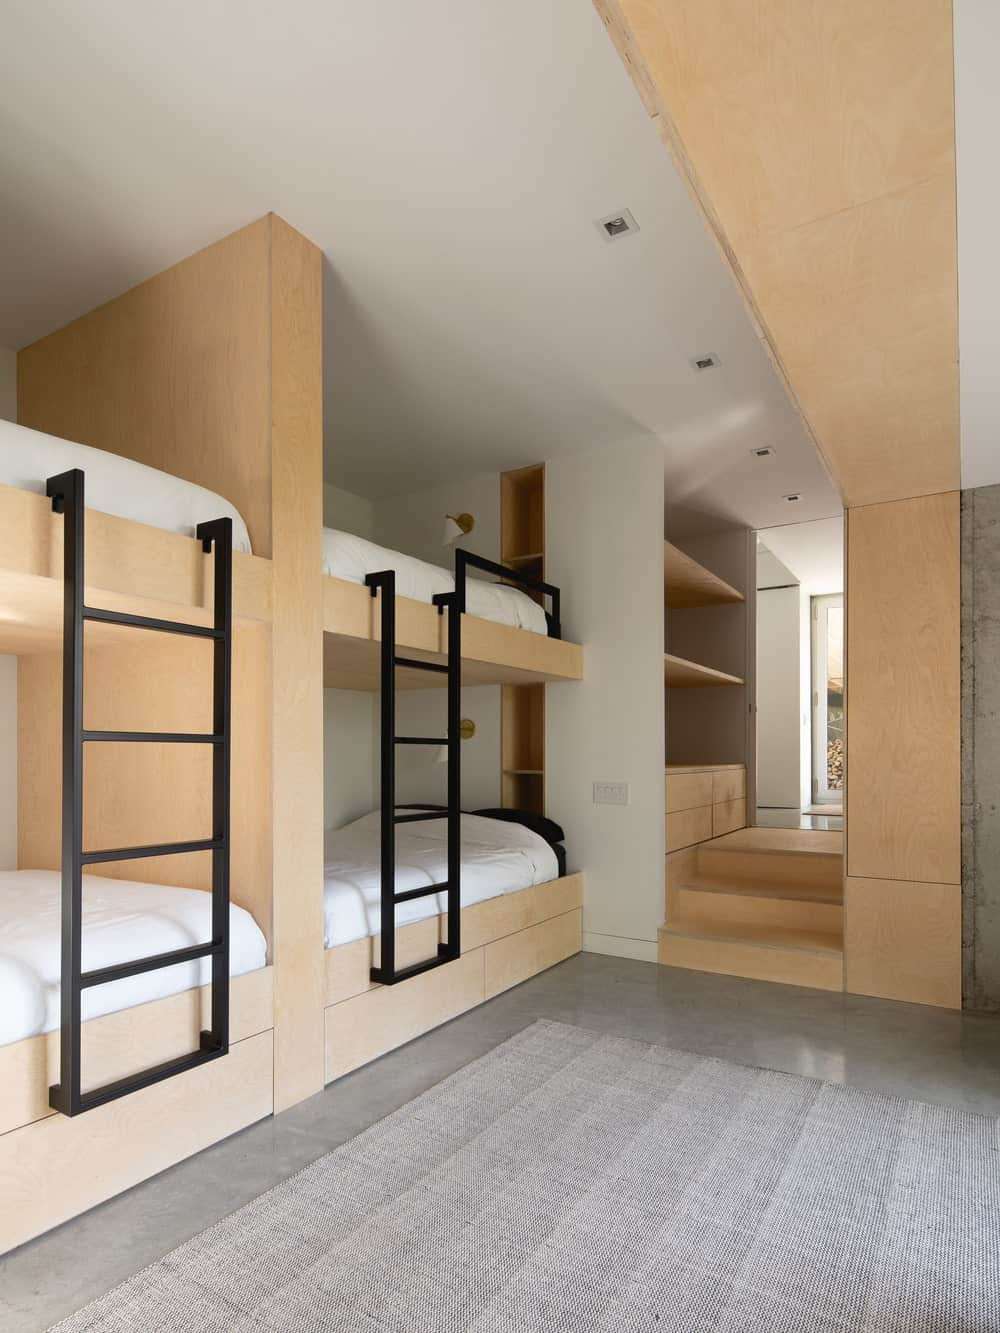 The bunk bedroom has a large wooden structure with four beds and attached two wrought iron ladders.